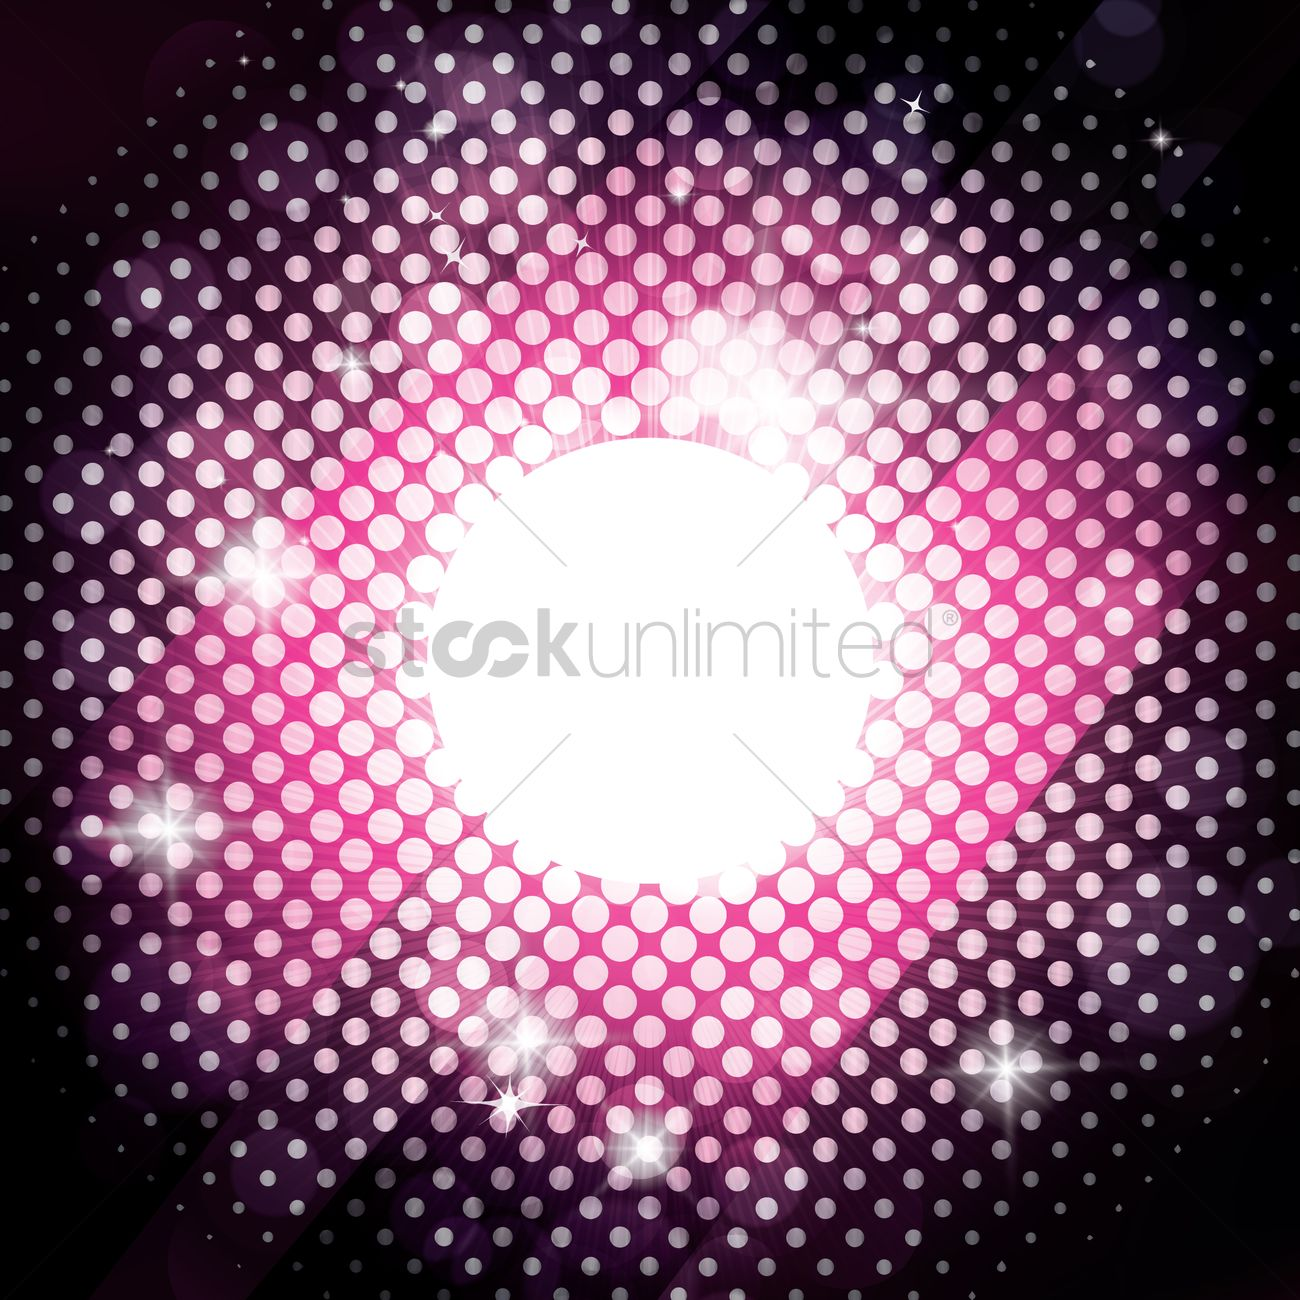 Music Event Background Concept Vector Image 1934555 Stockunlimited